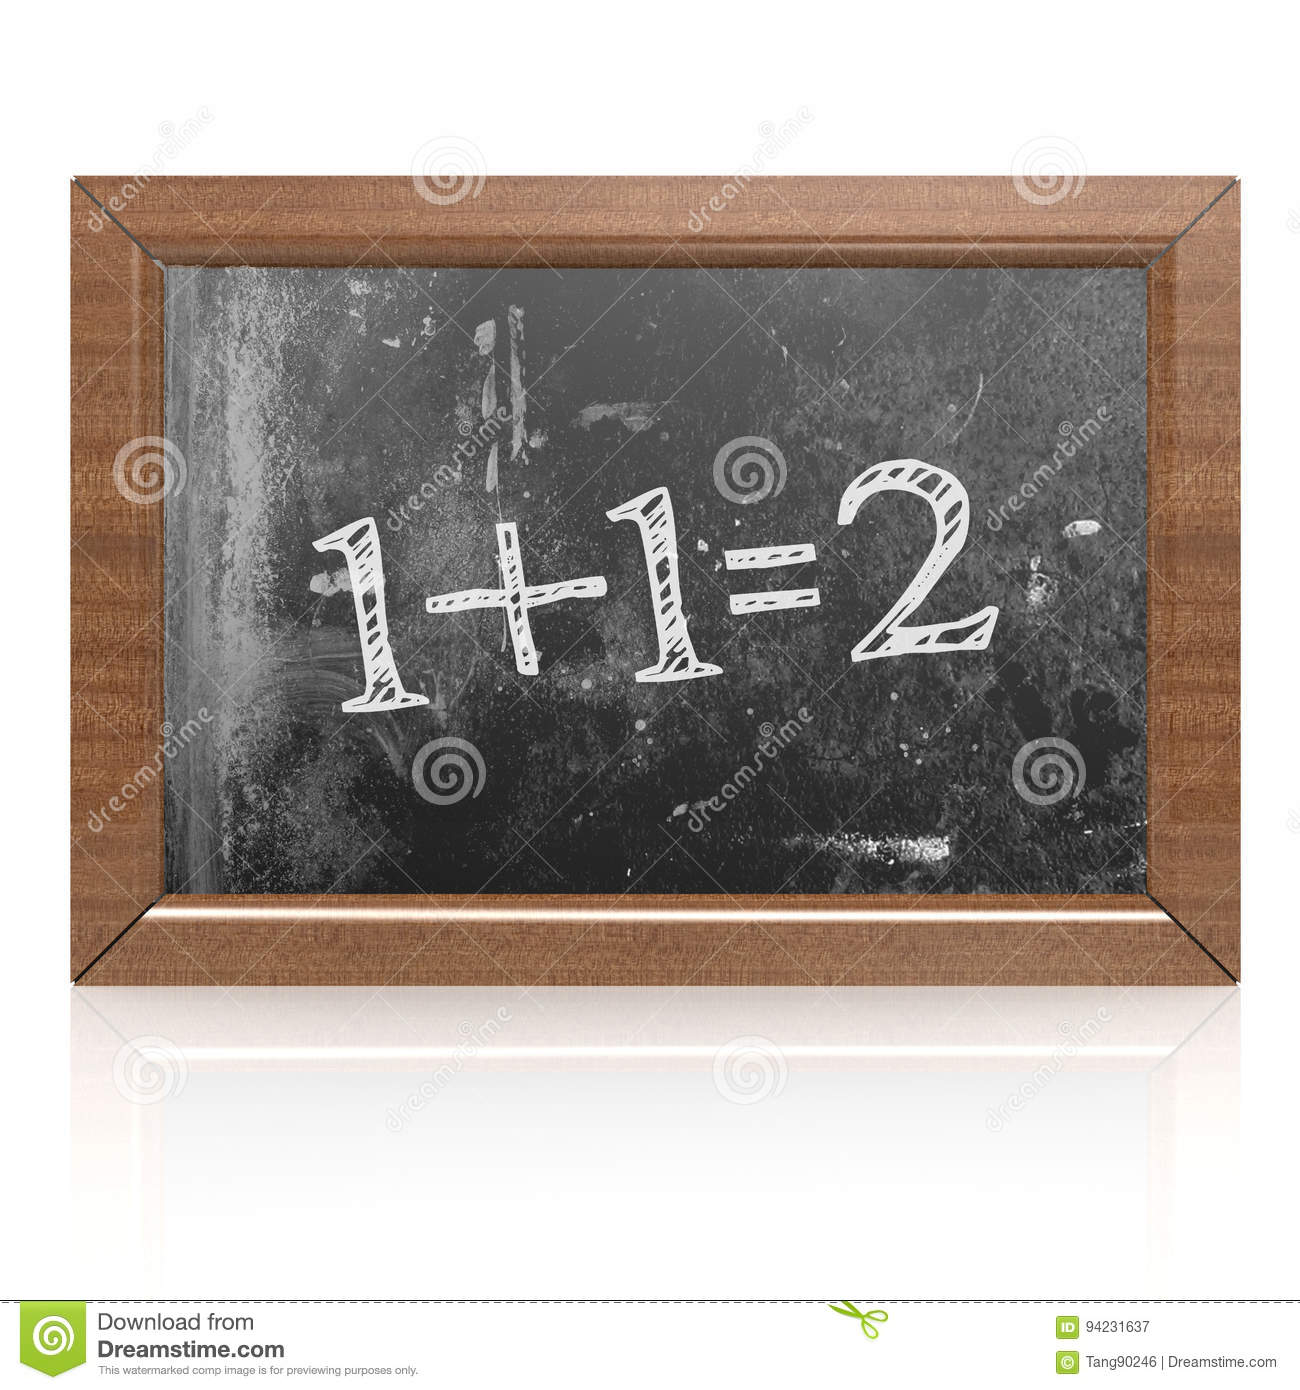 Sum one plus one equals two written on blackboard